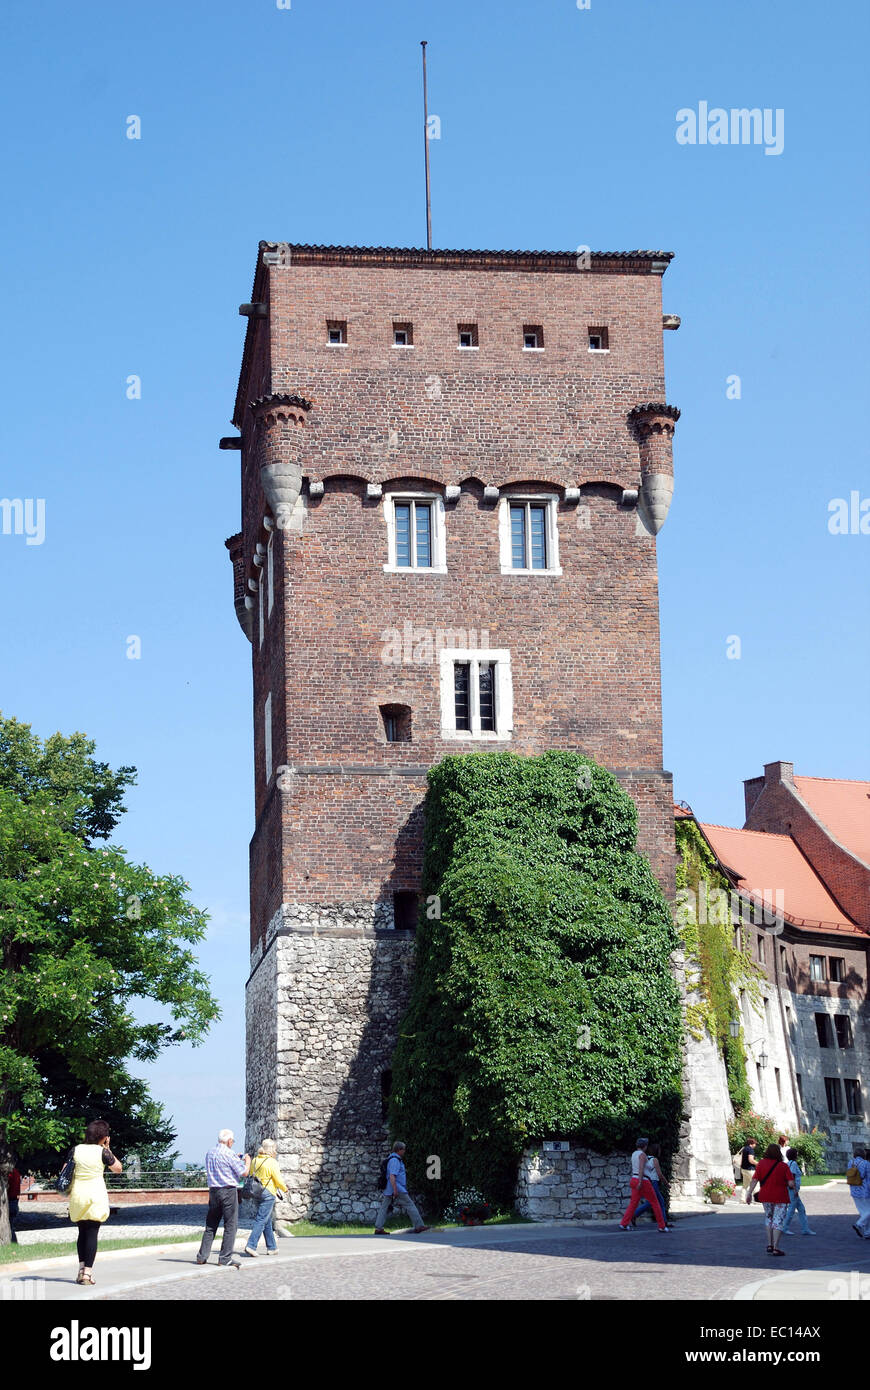 Watch tower on Wawel Hill of Krakow in Poland. - Stock Image